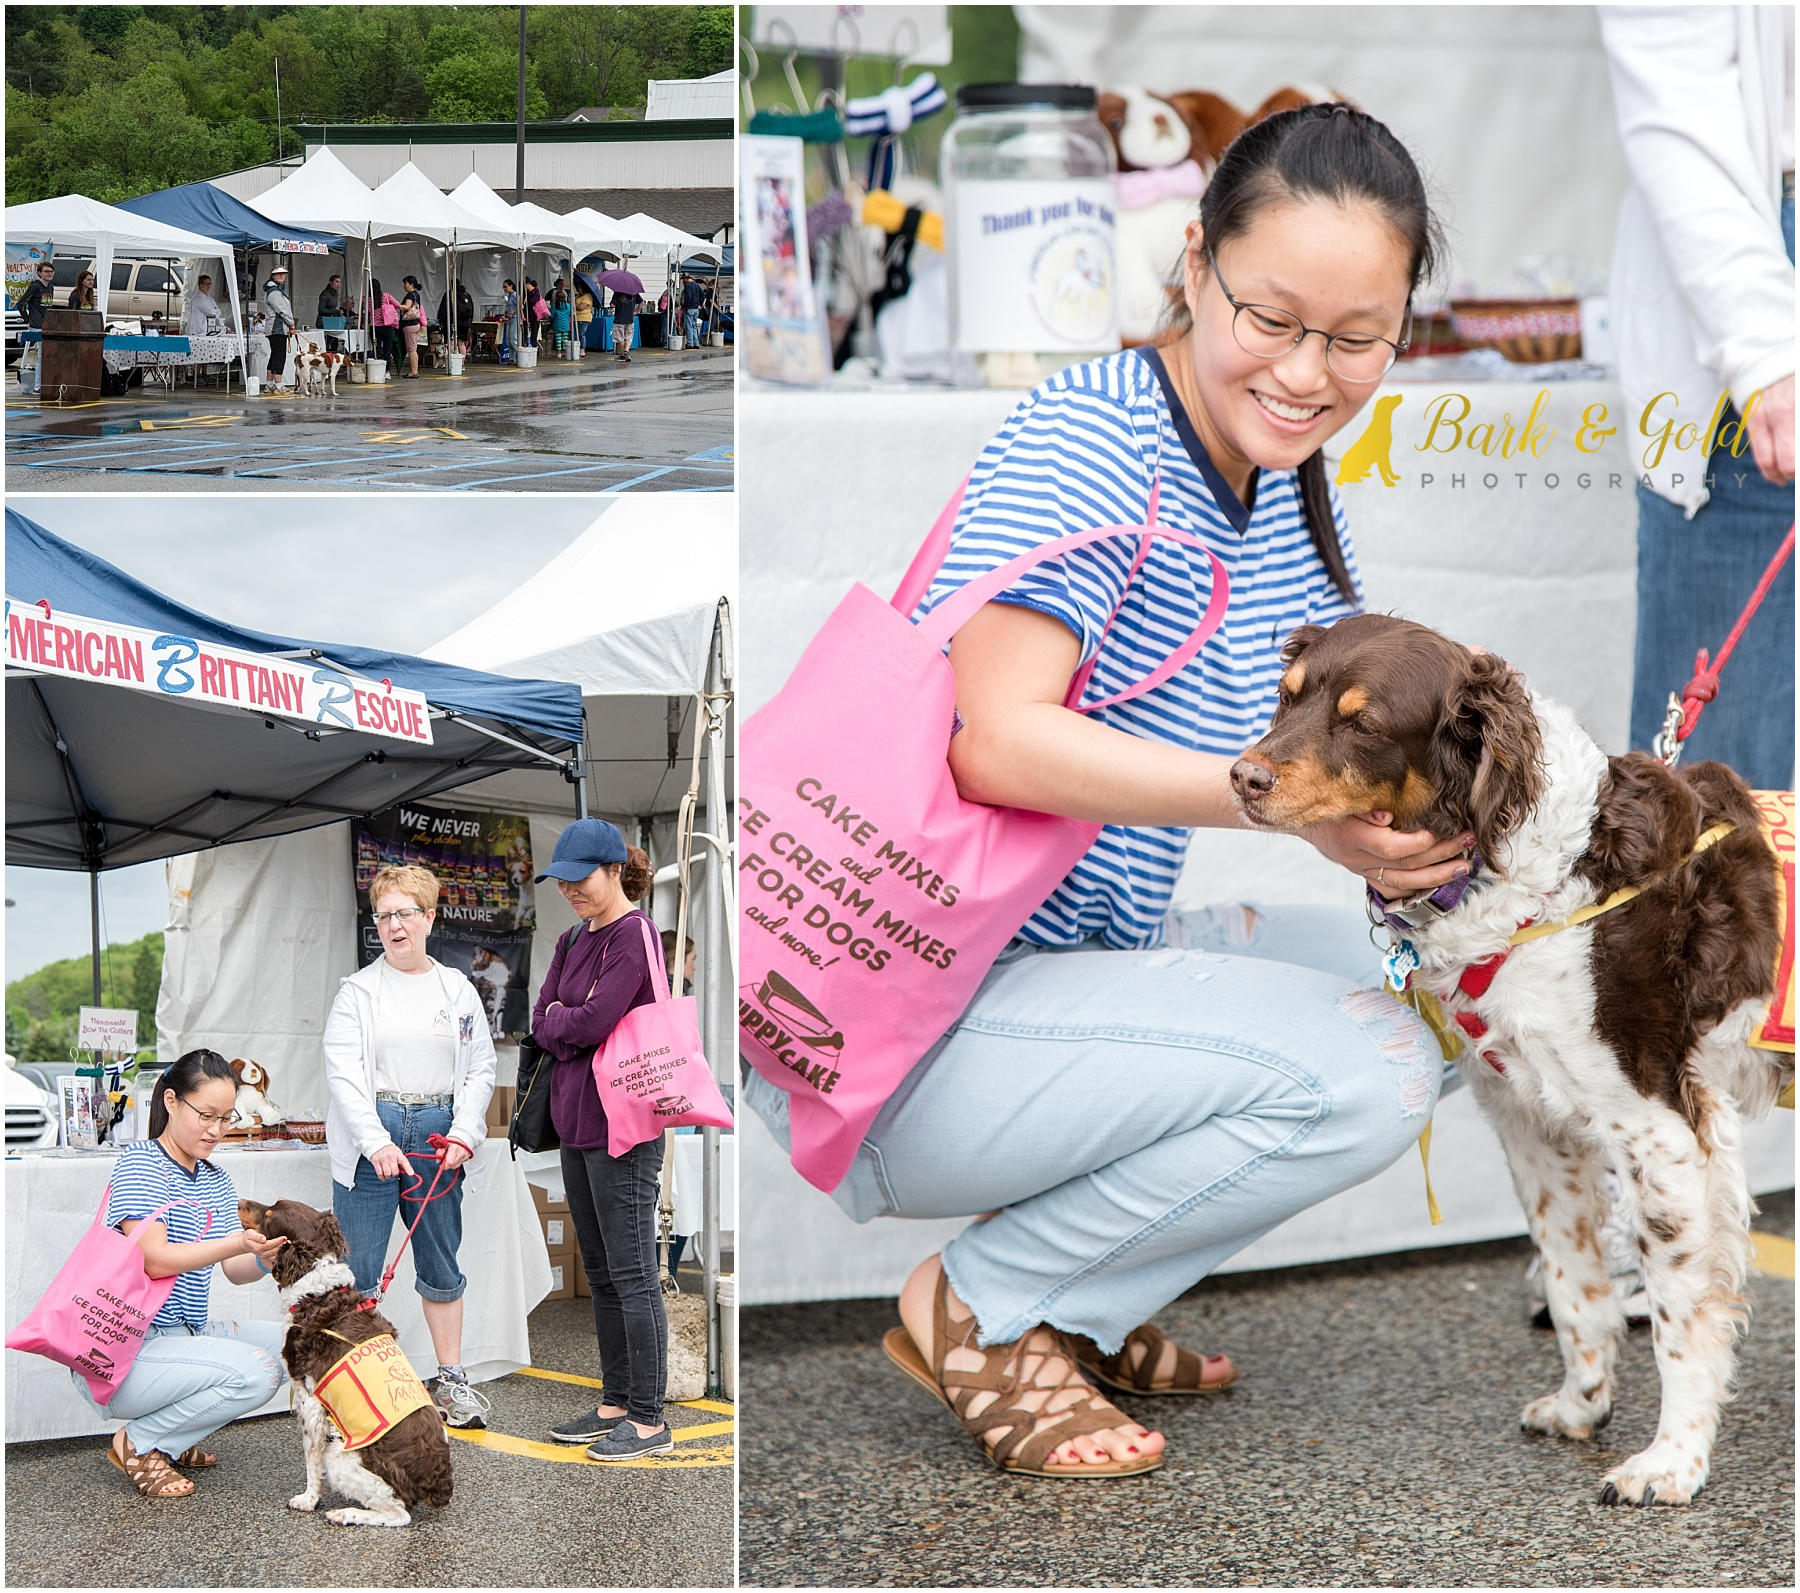 American Brittany Rescue dog greeting customers at Healthy Pet Day 2018